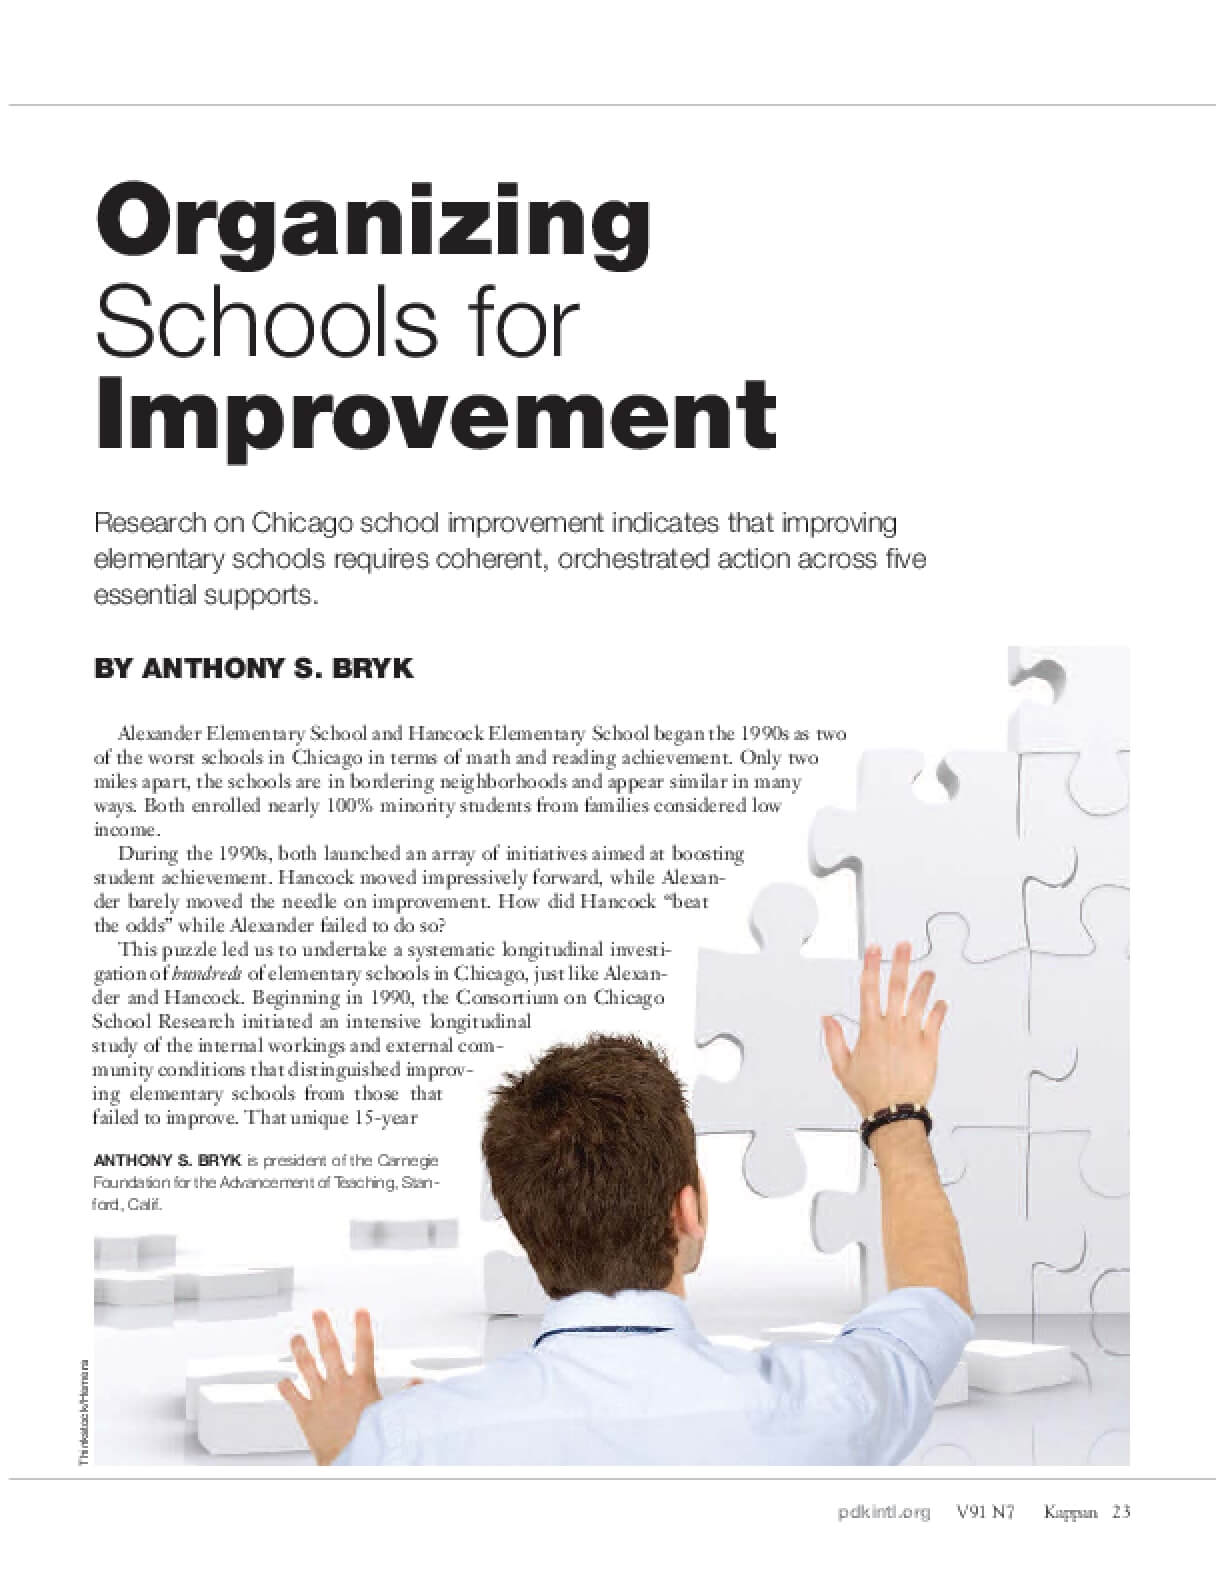 Organizing Schools for Improvement